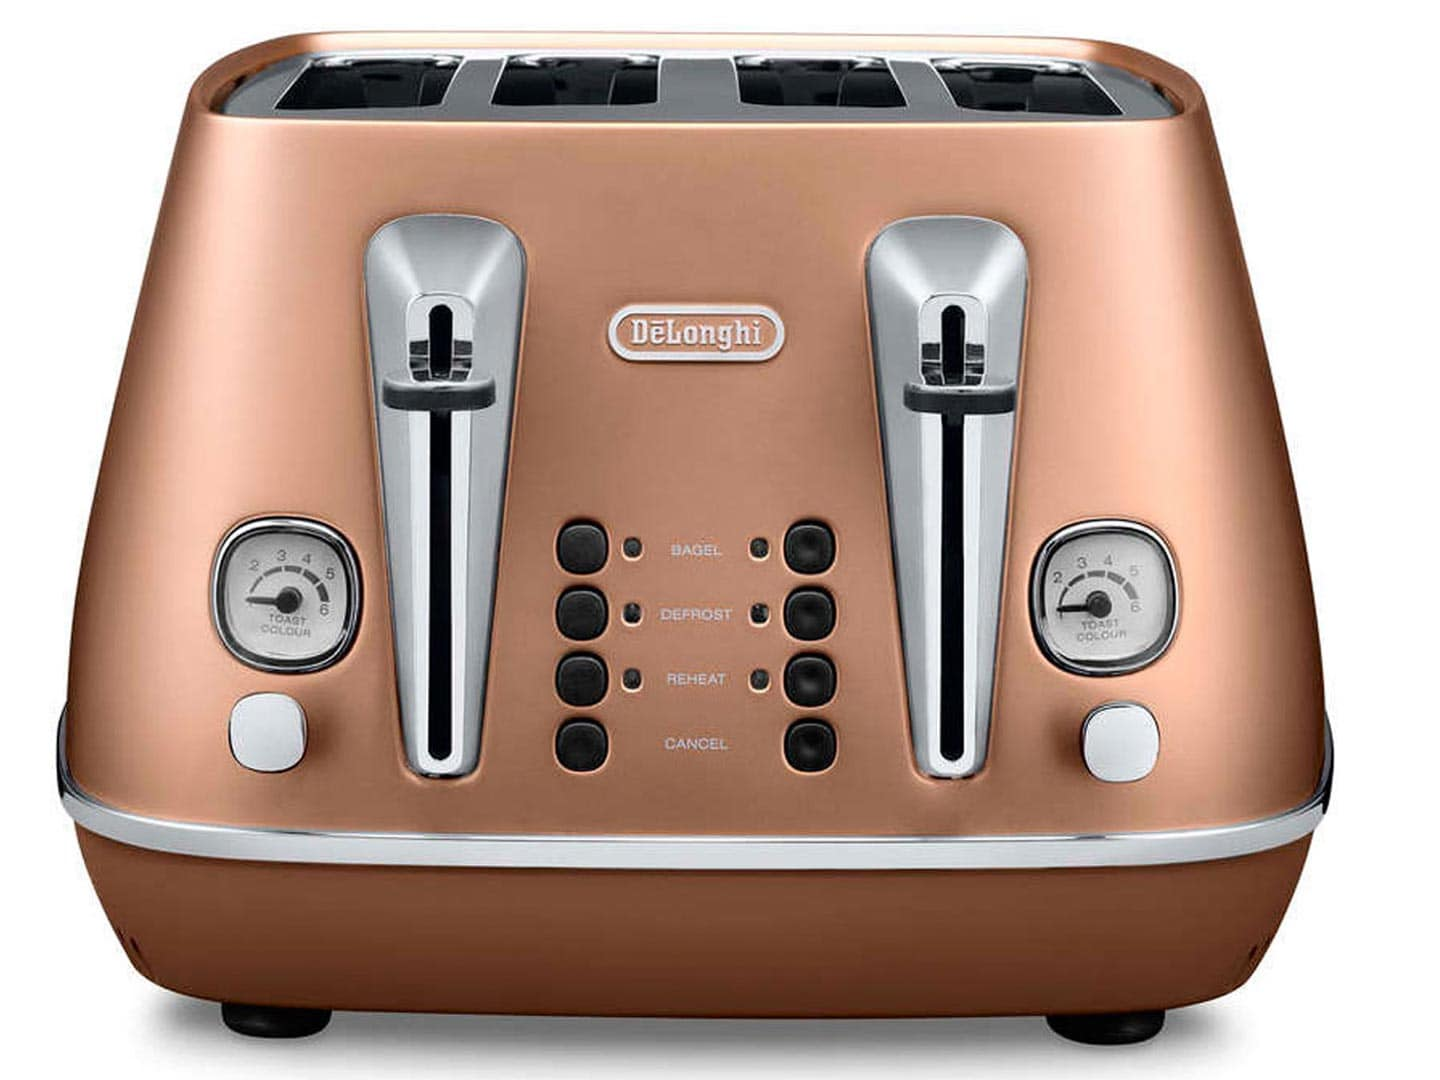 Clearance Stock: Distinta 4 slice toaster - Style Copper CTI 4003.CP